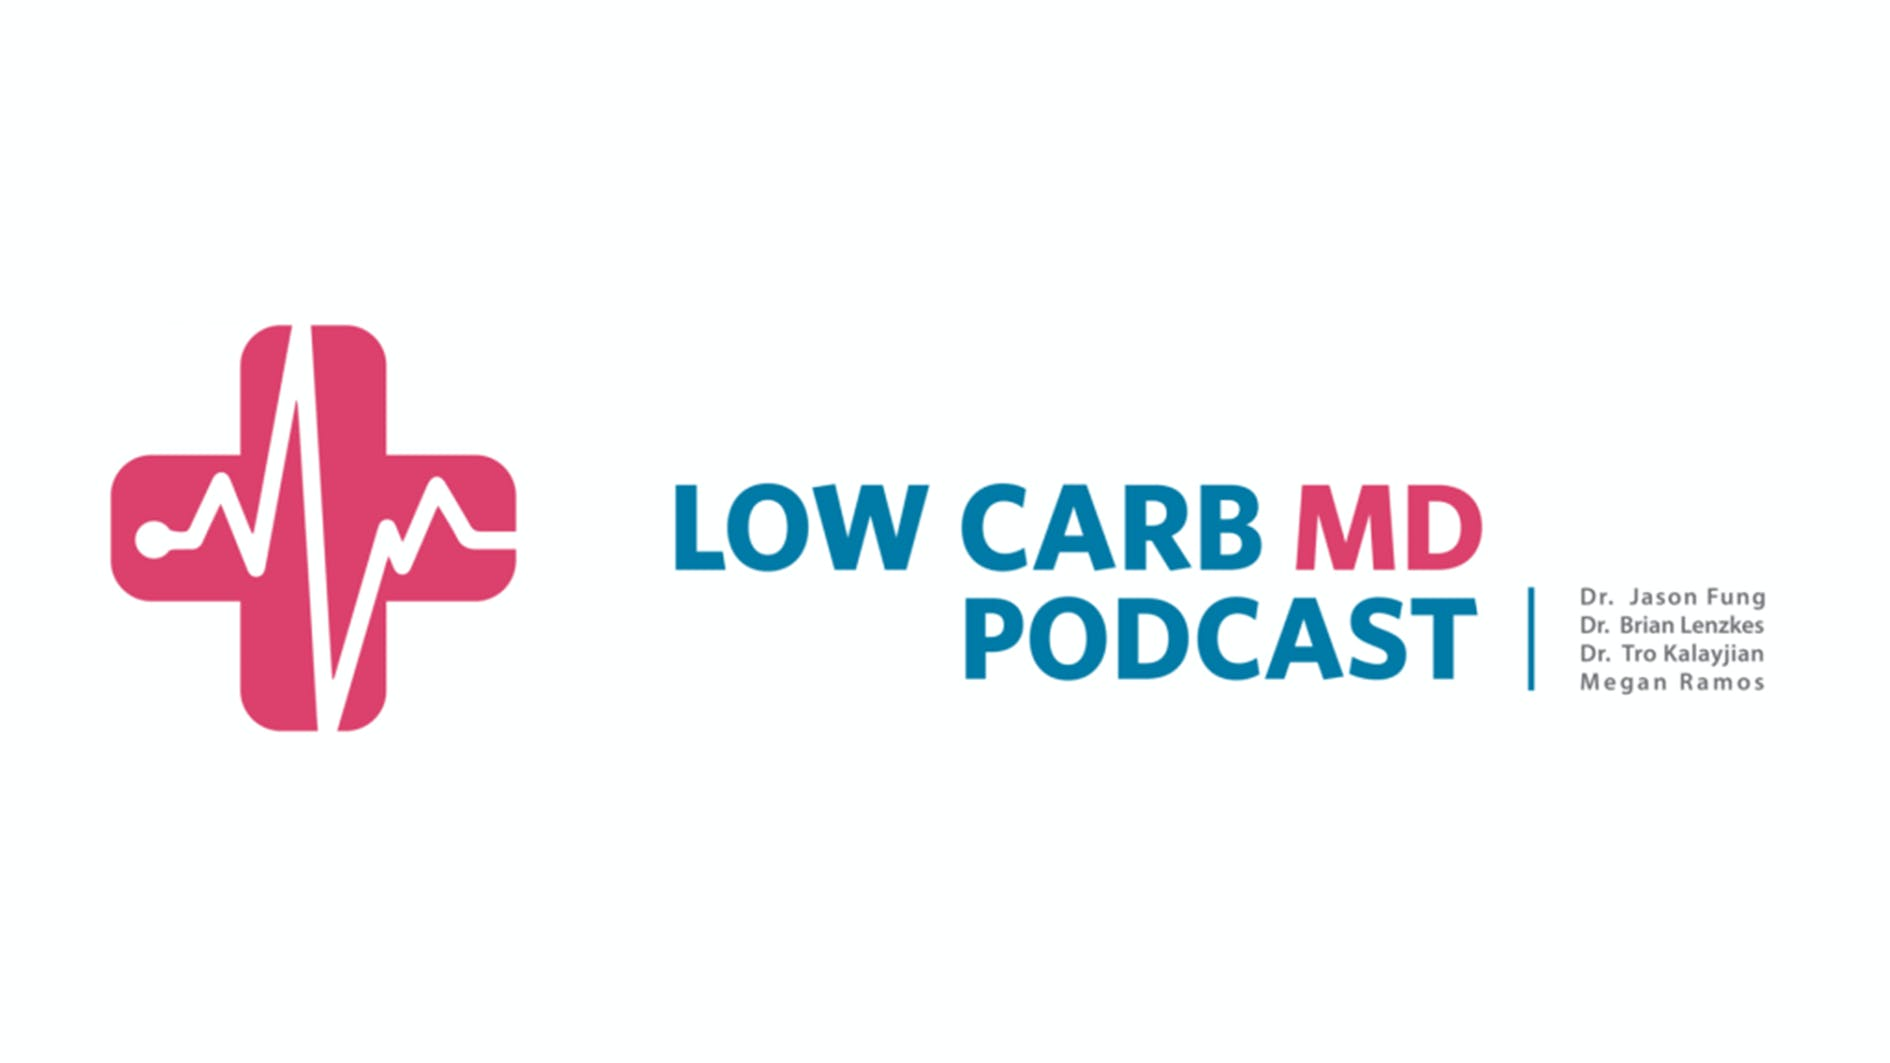 Low Carb MD podcast